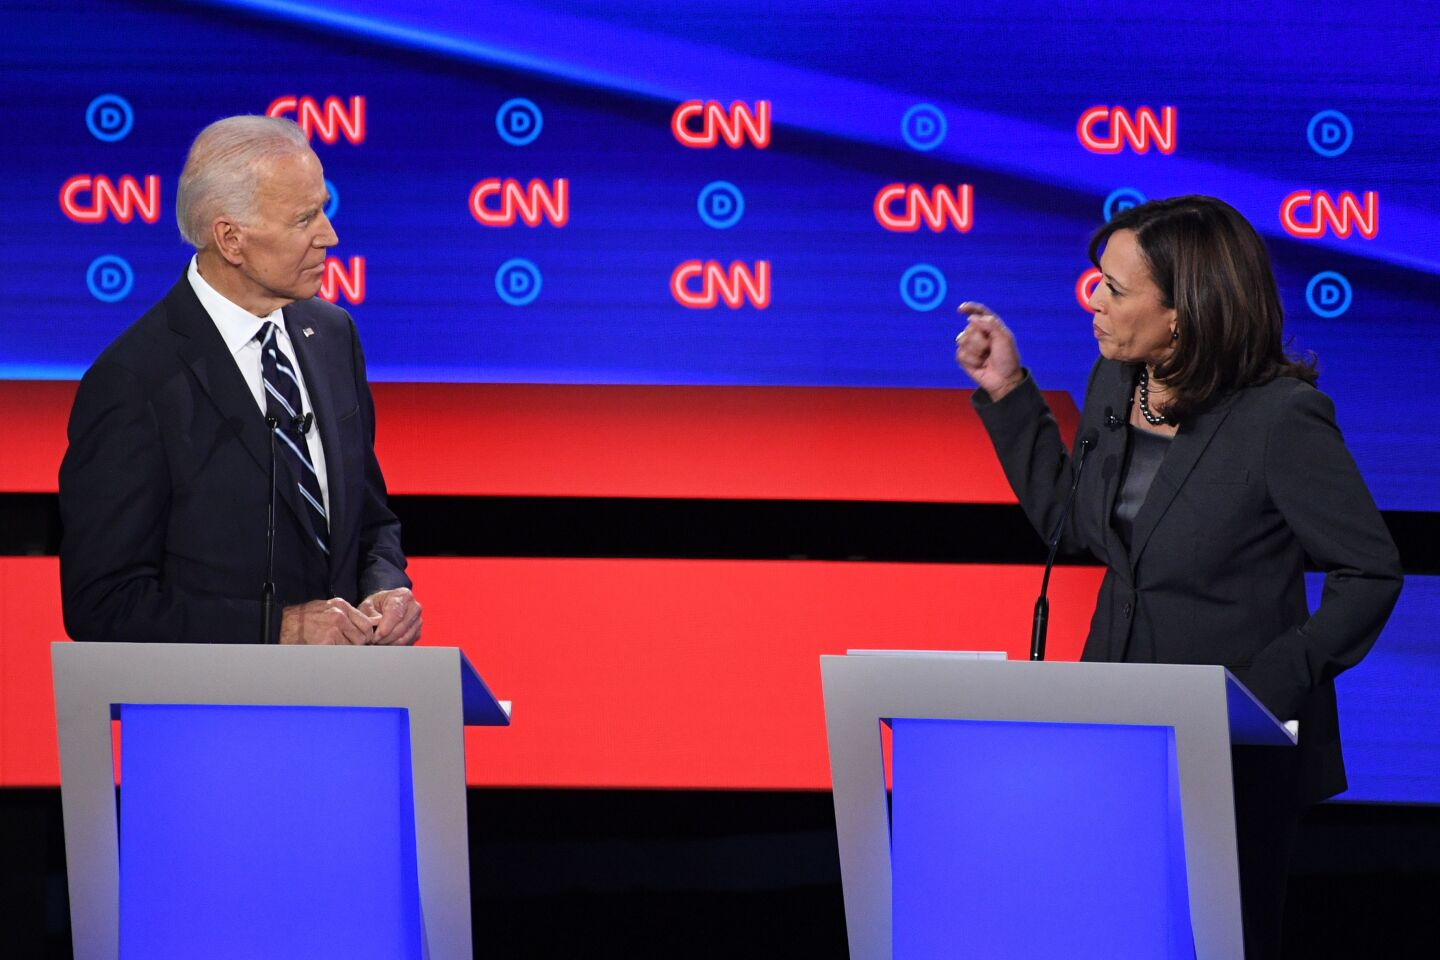 Democratic presidential hopeful Former Vice President Joe Biden (L) listens as US Senator from California Kamala Harris speaks during the second round of the second Democratic primary debate of the 2020 presidential campaign season hosted by CNN at the Fox Theatre in Detroit, Michigan on July 31, 2019. (Photo by Jim WATSON / AFP)JIM WATSON/AFP/Getty Images ** OUTS - ELSENT, FPG, CM - OUTS * NM, PH, VA if sourced by CT, LA or MoD **